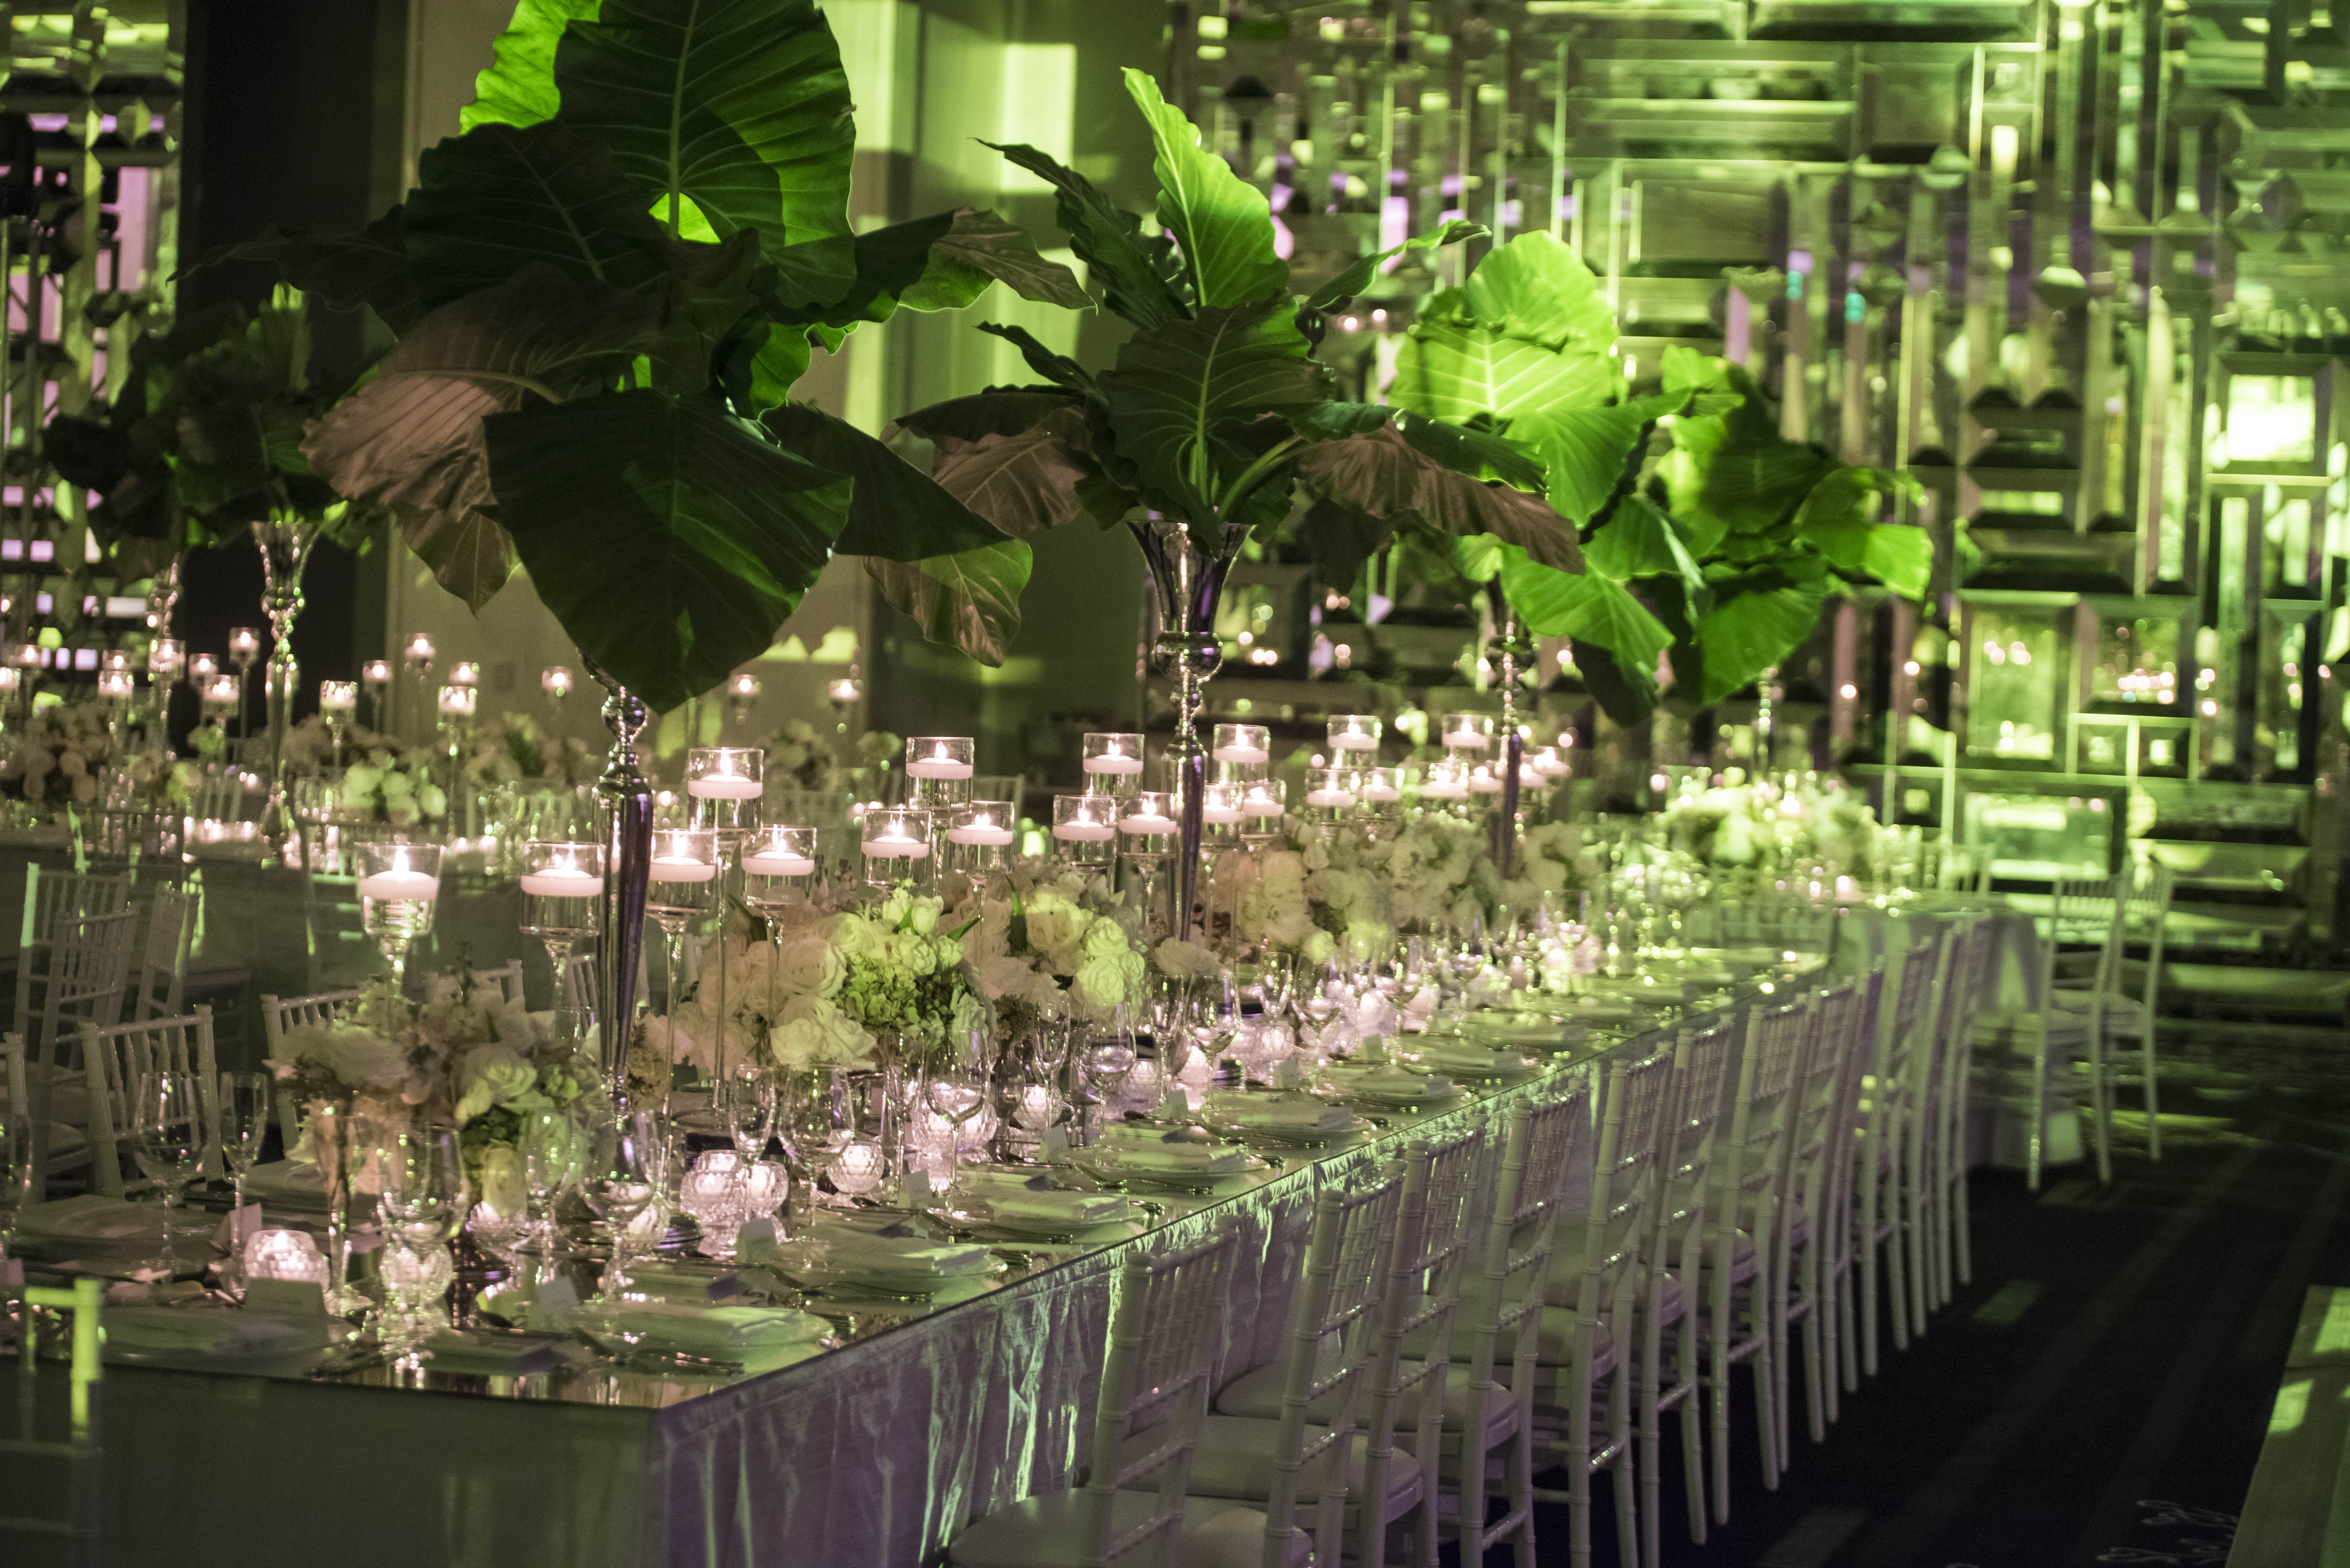 Tropical Green & White Wedding - Carrie Zack Events